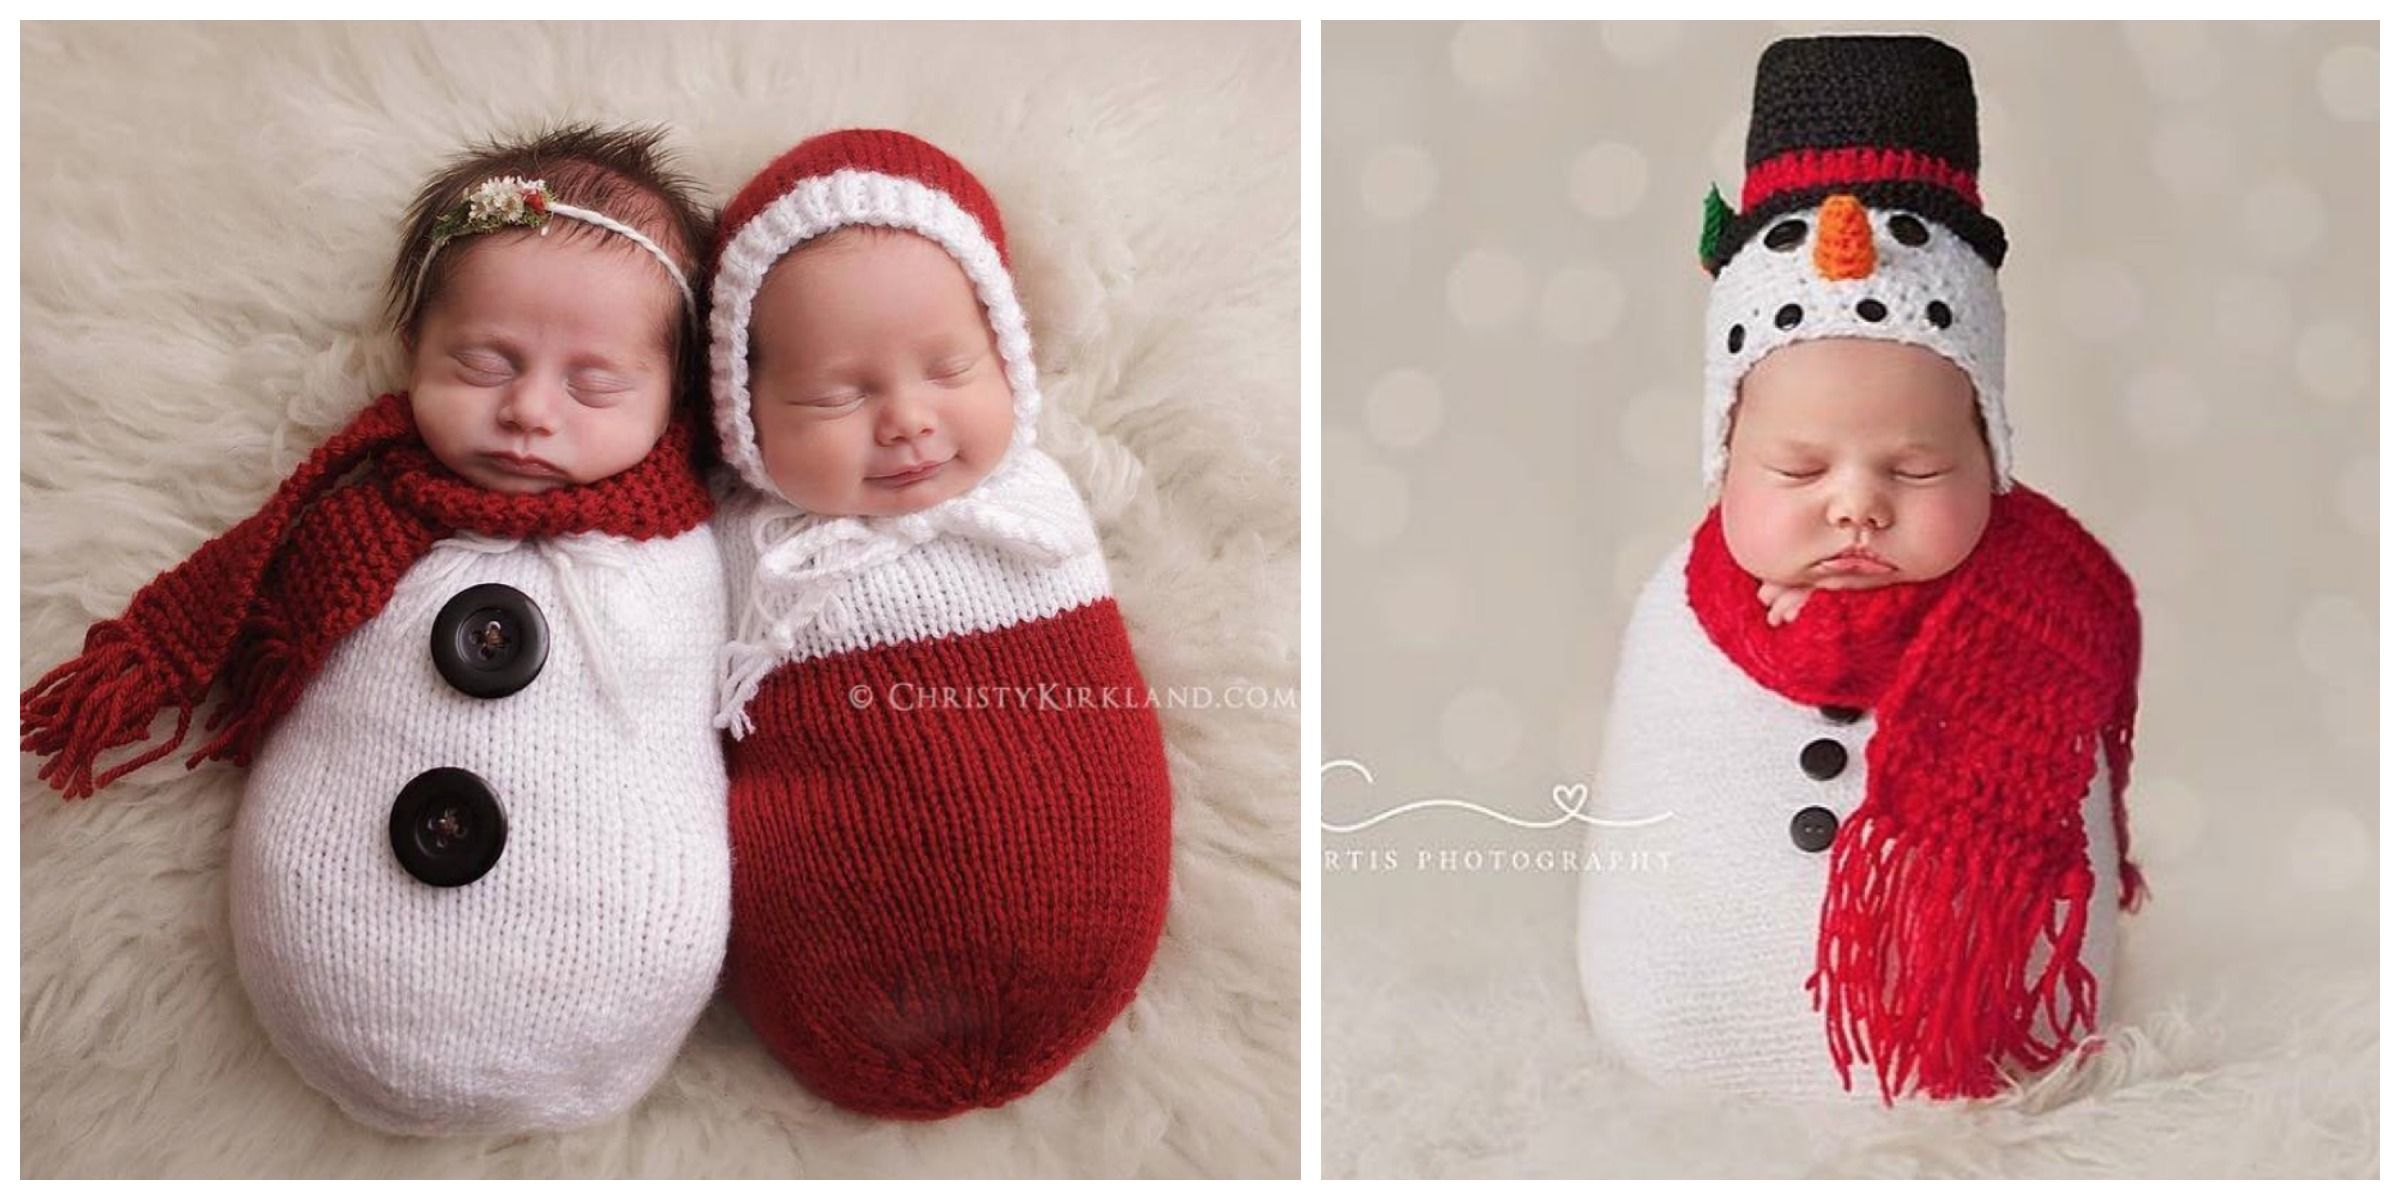 These 17 Newborn Babies Wearing Knitted Christmas Outfits Will Fill Your Heart With Cheer